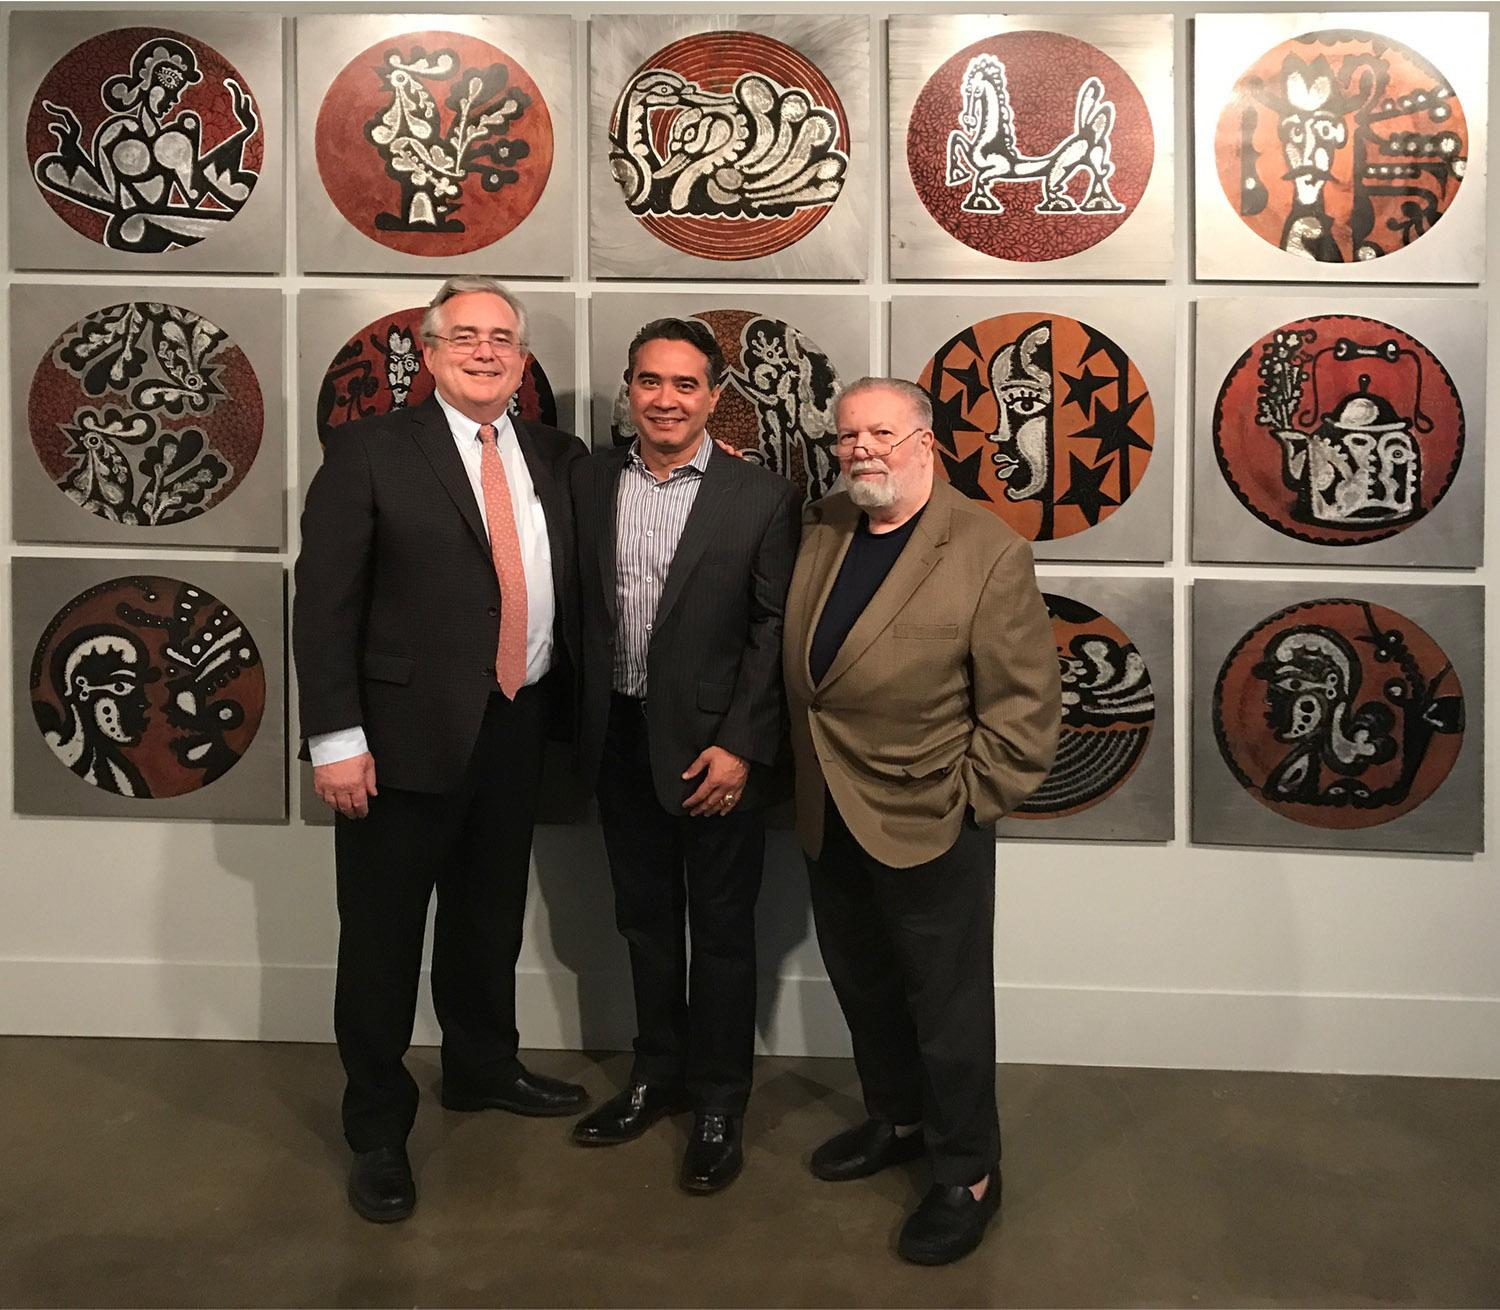 Jack Rassmusen, Carlos Luna, and Ramon Osuna at Green Machine: The Art of Carlos Luna; American University Museum,Washington, DC, 2017